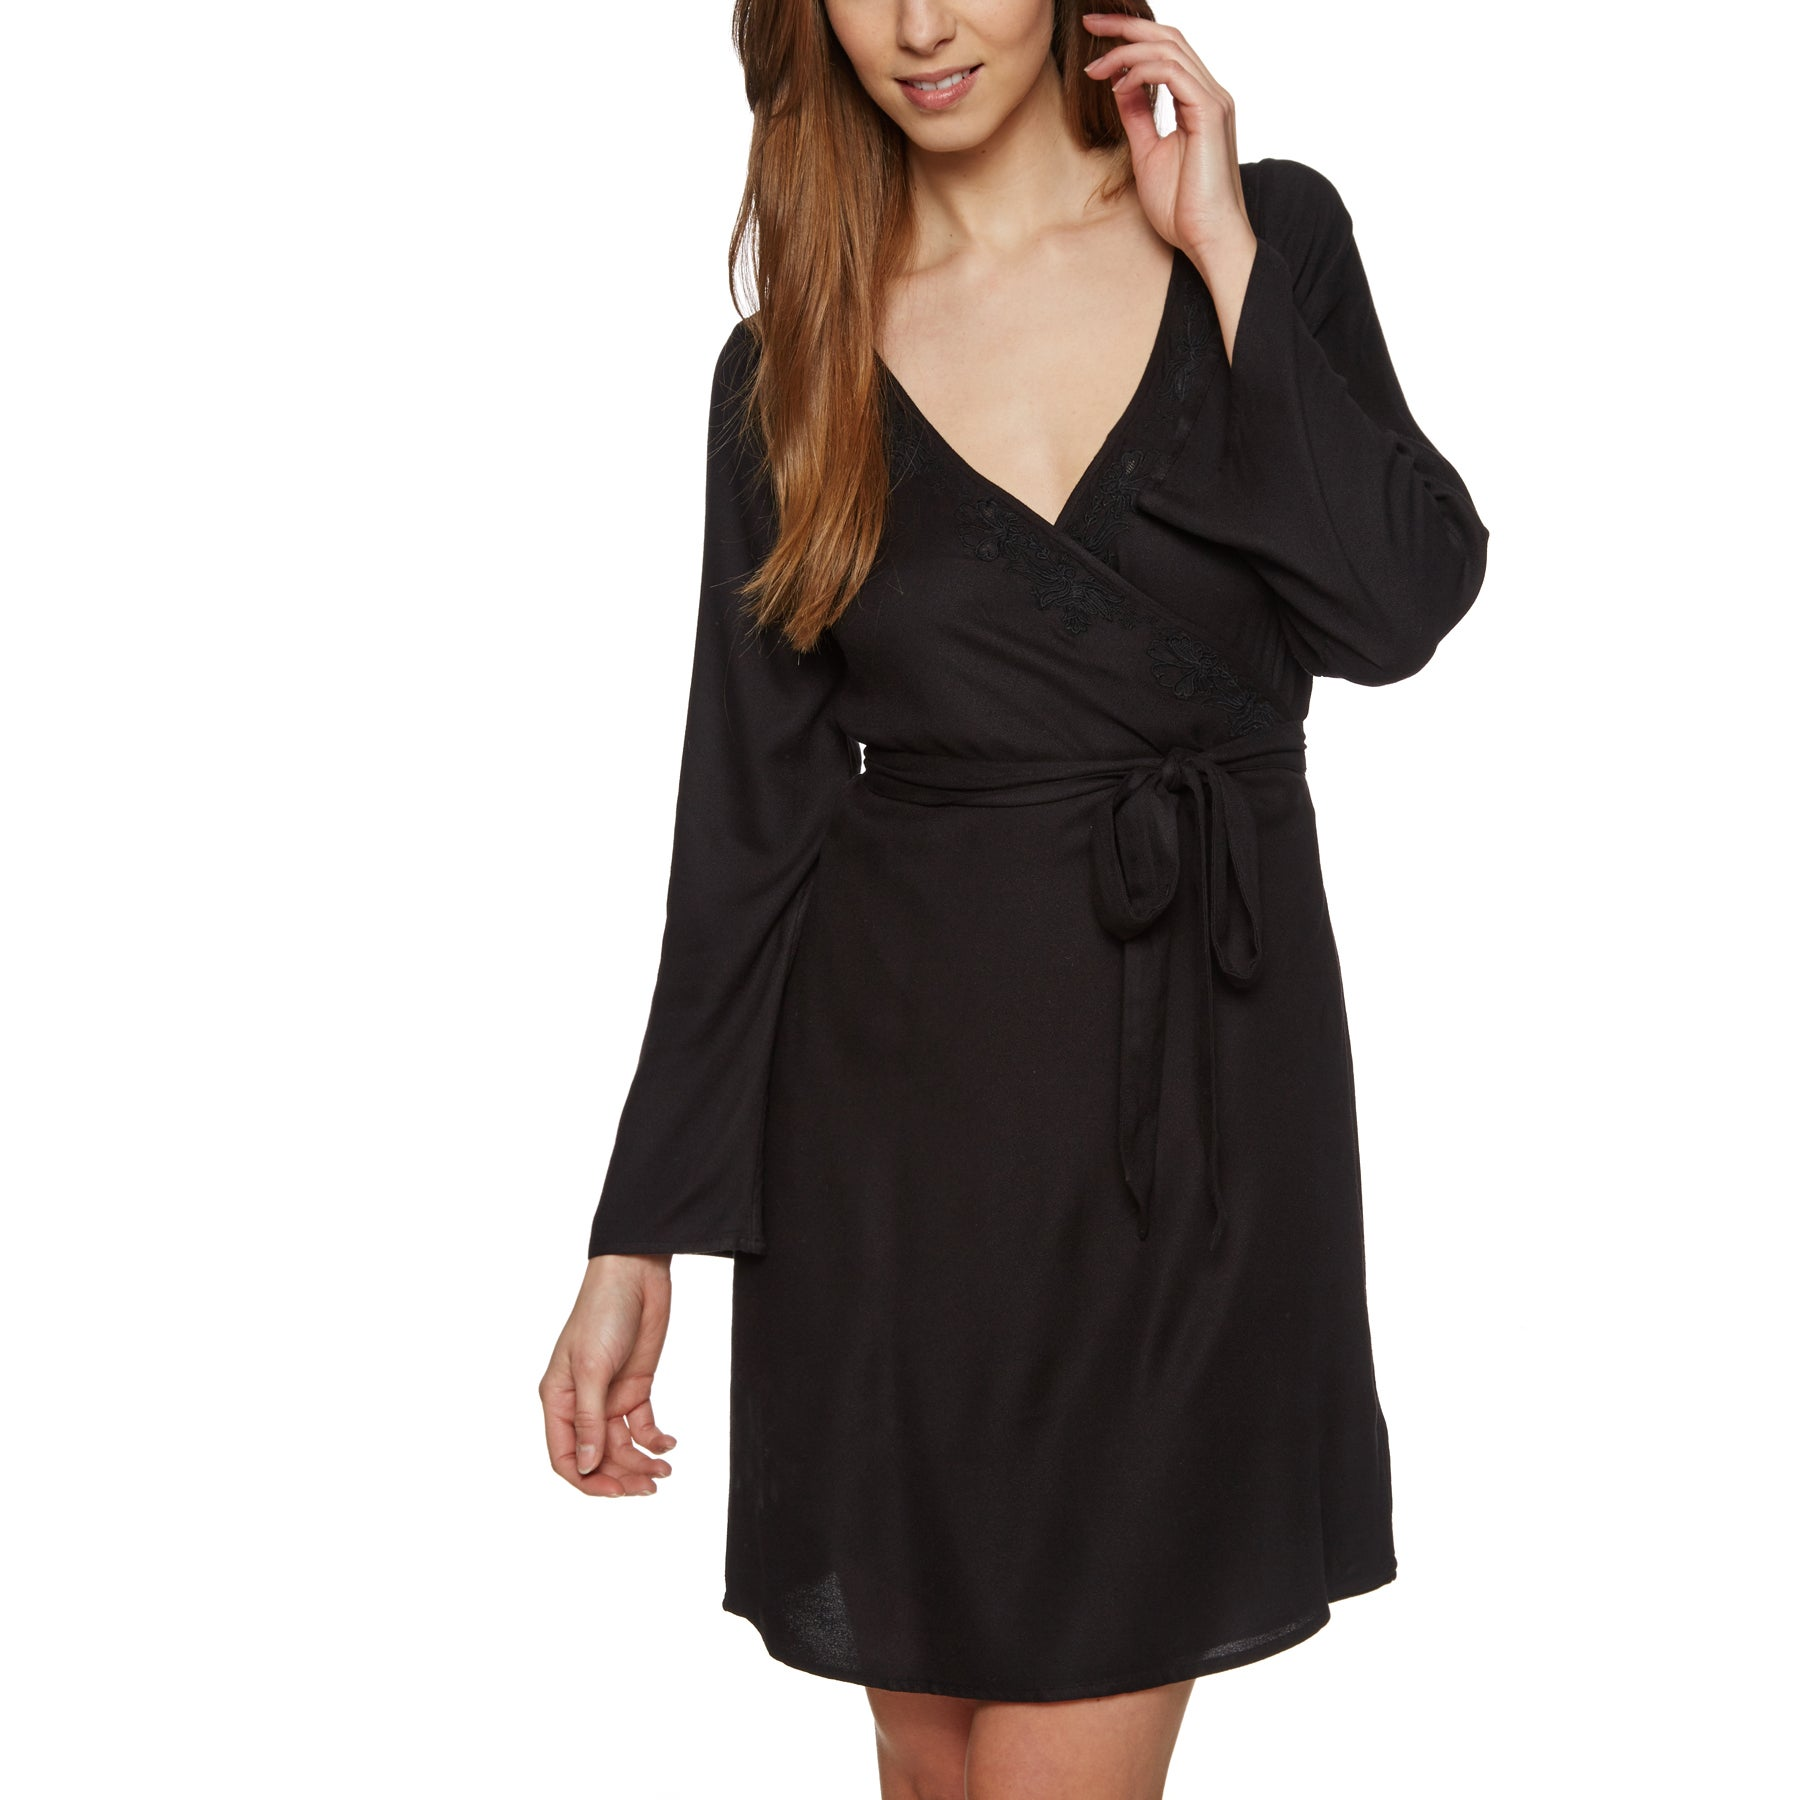 Roxy Small Hours Solid Dress - Anthracite